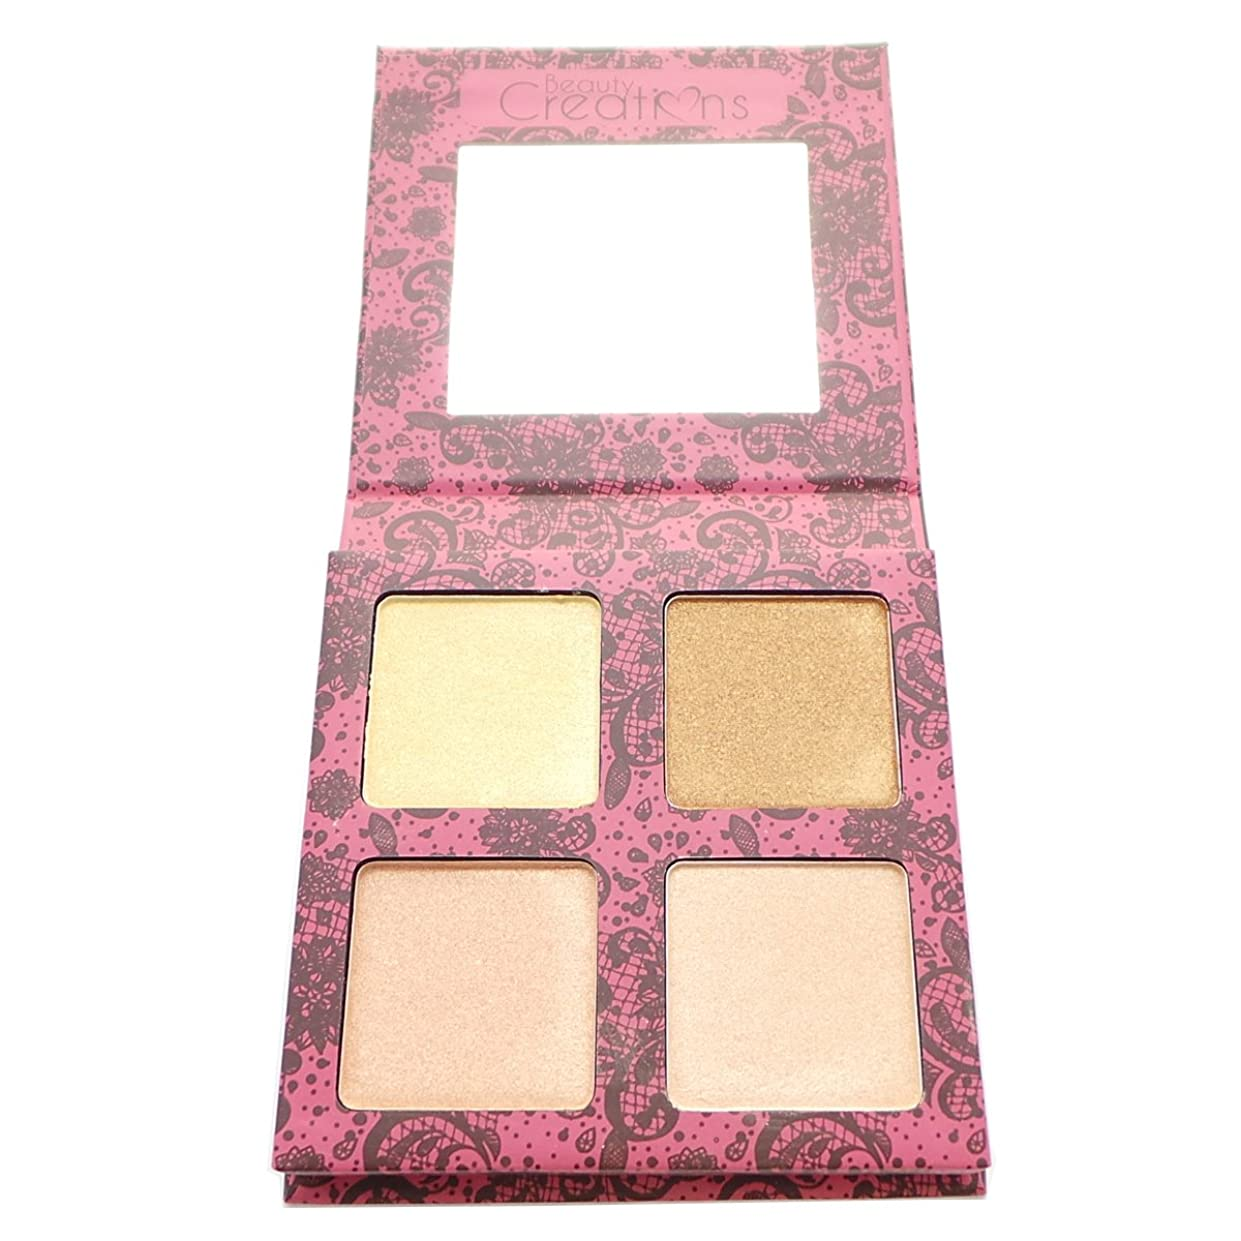 助手どれかイデオロギー(6 Pack) BEAUTY CREATIONS Scandalous Glow Highlight Palette (並行輸入品)